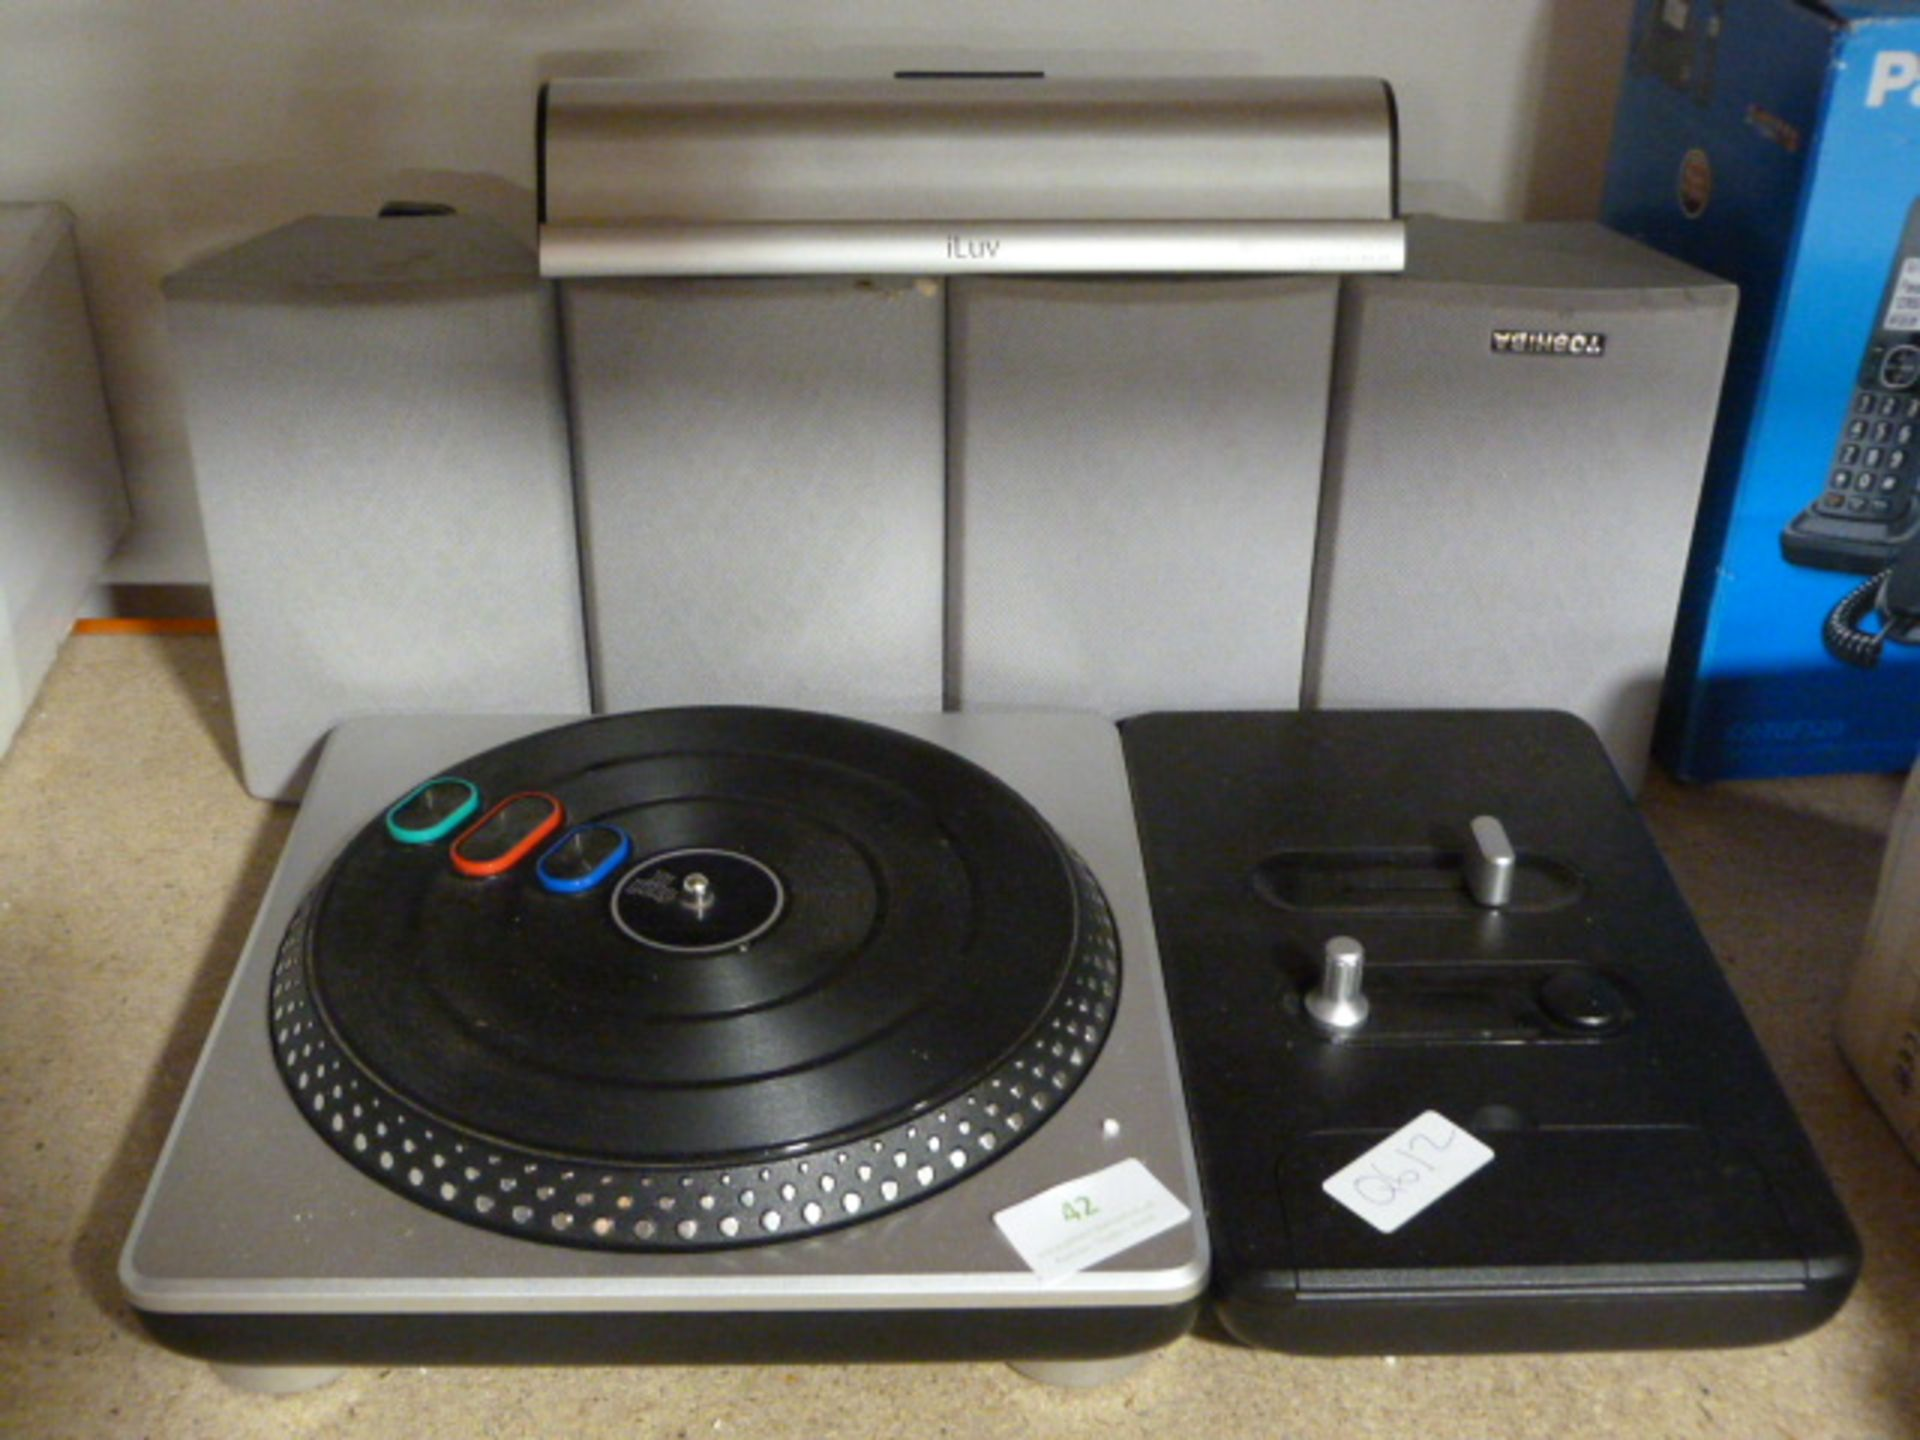 Lot 42 - Turntable, Four Toshiba Speakers, and a Iluv Bluet